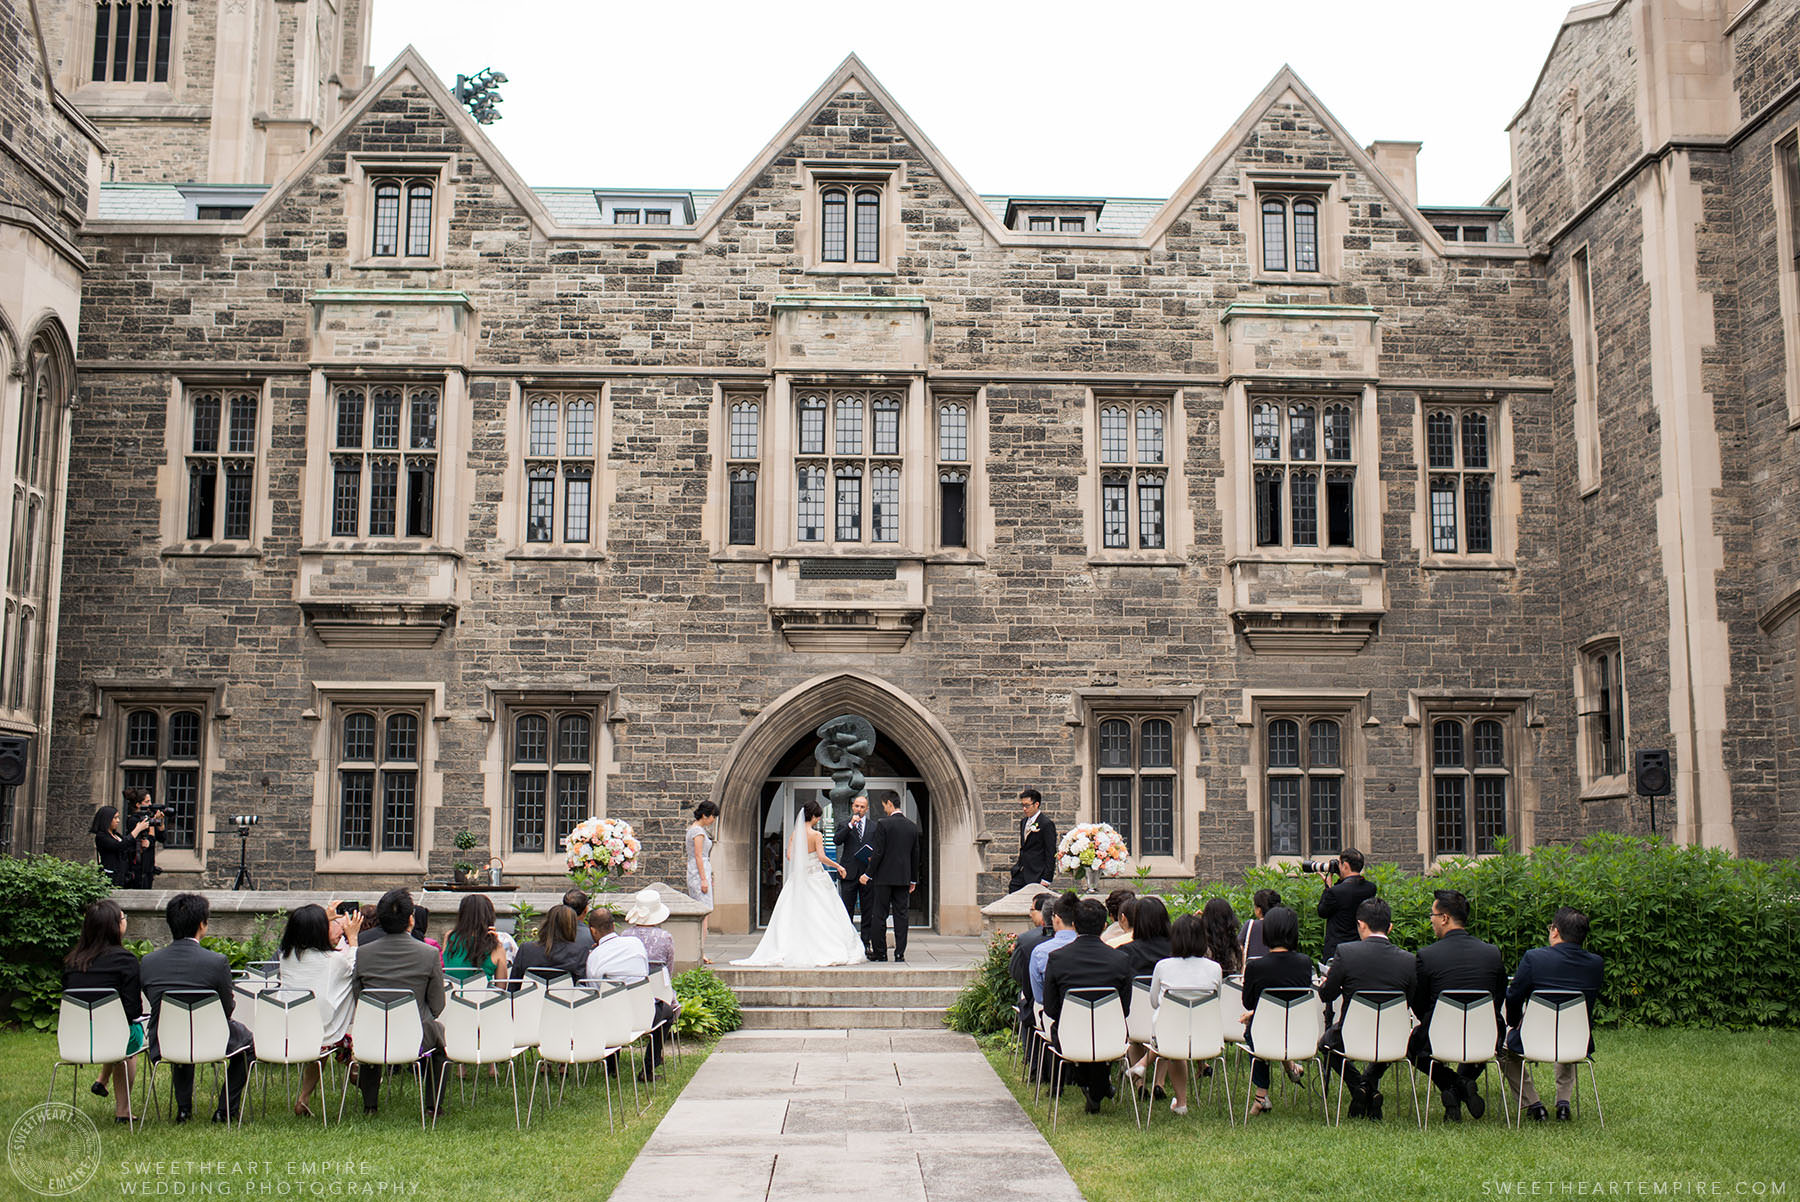 Marriage ceremony, Hart House University of Toronto Wedding